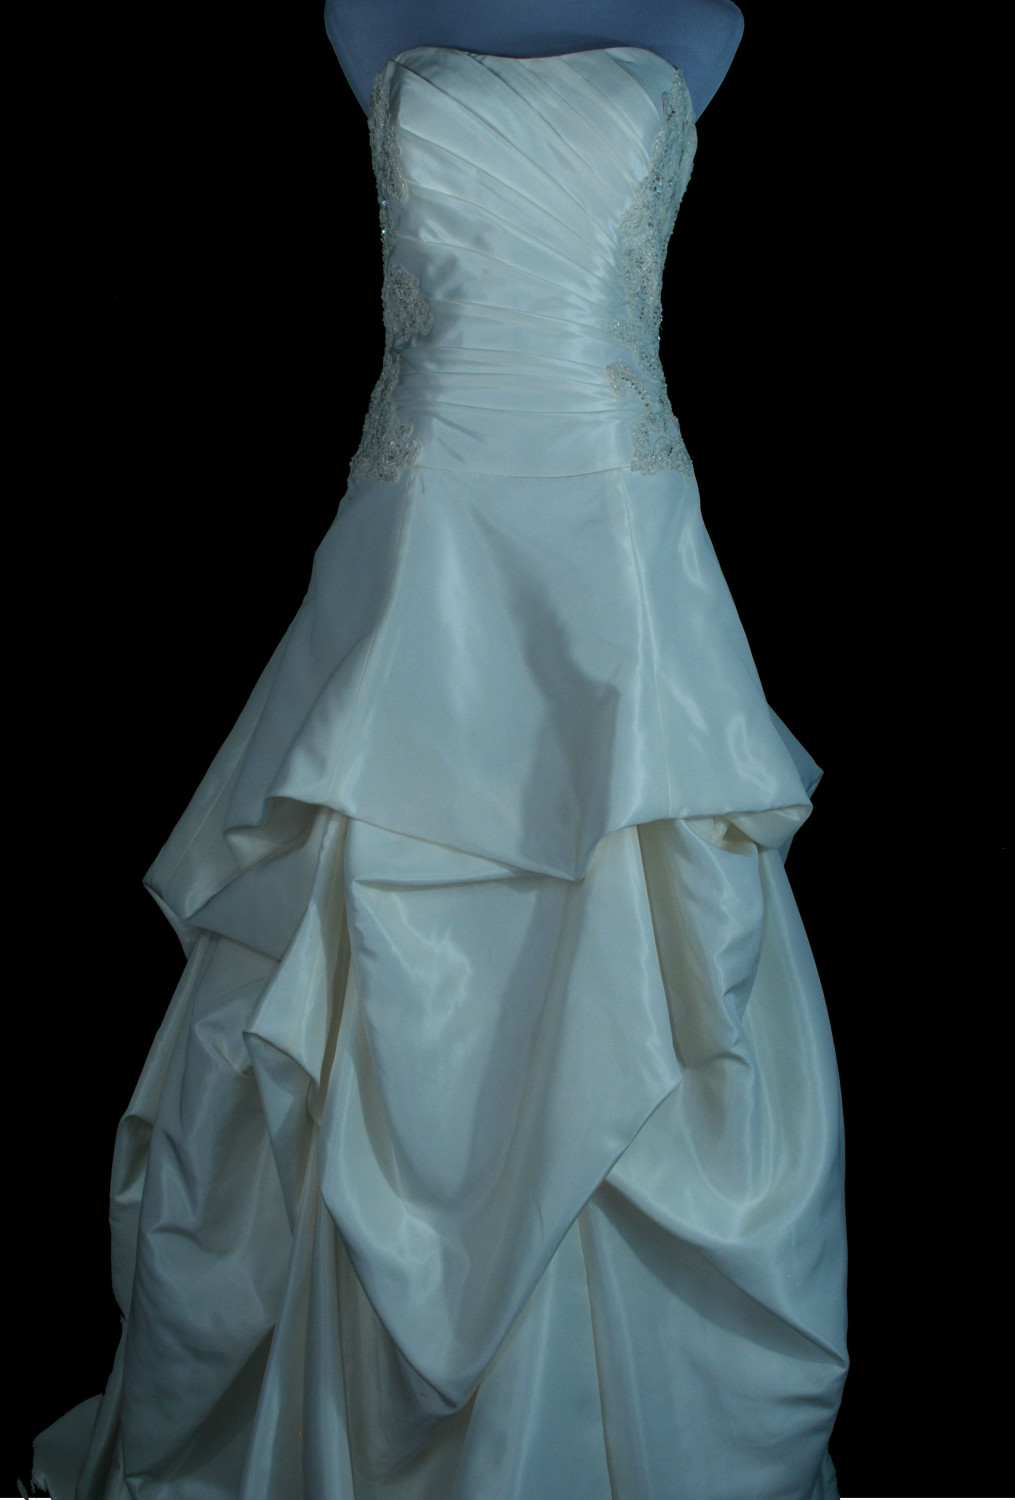 Eden Bridals – Original Retail: $695, CWS: $345